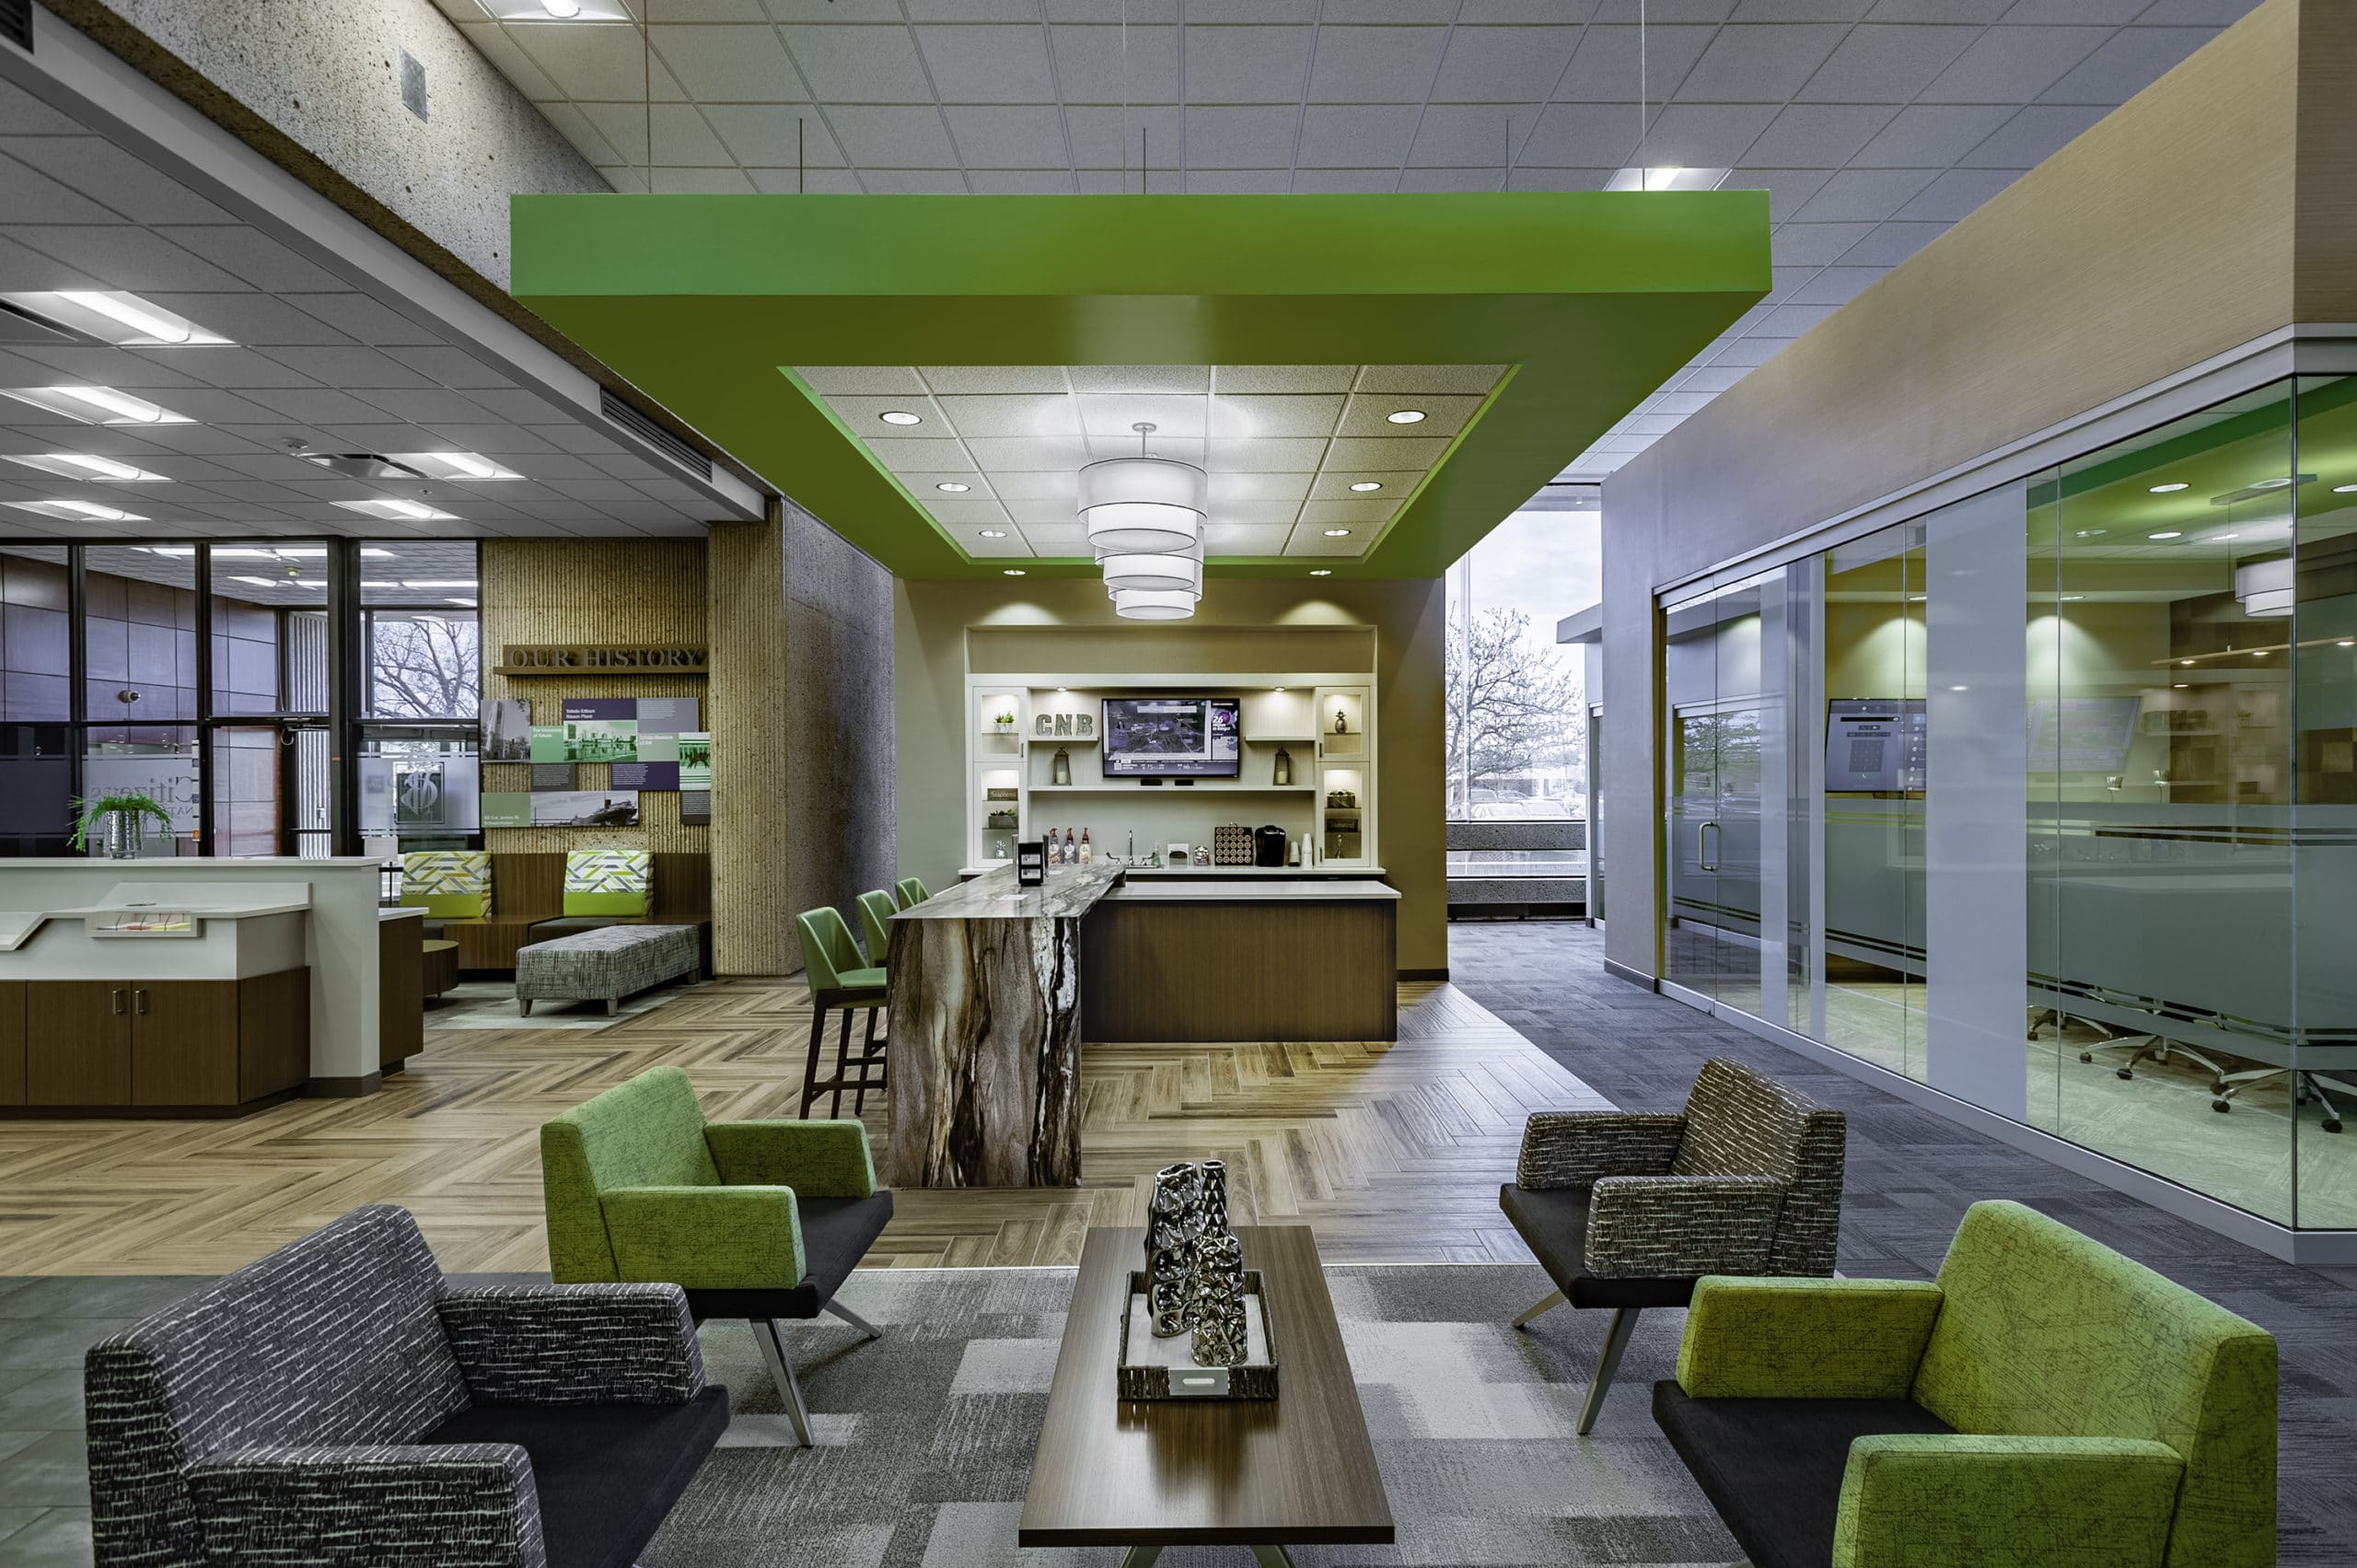 Post Pandemic Design Solutions; larger lobby space for social distancing